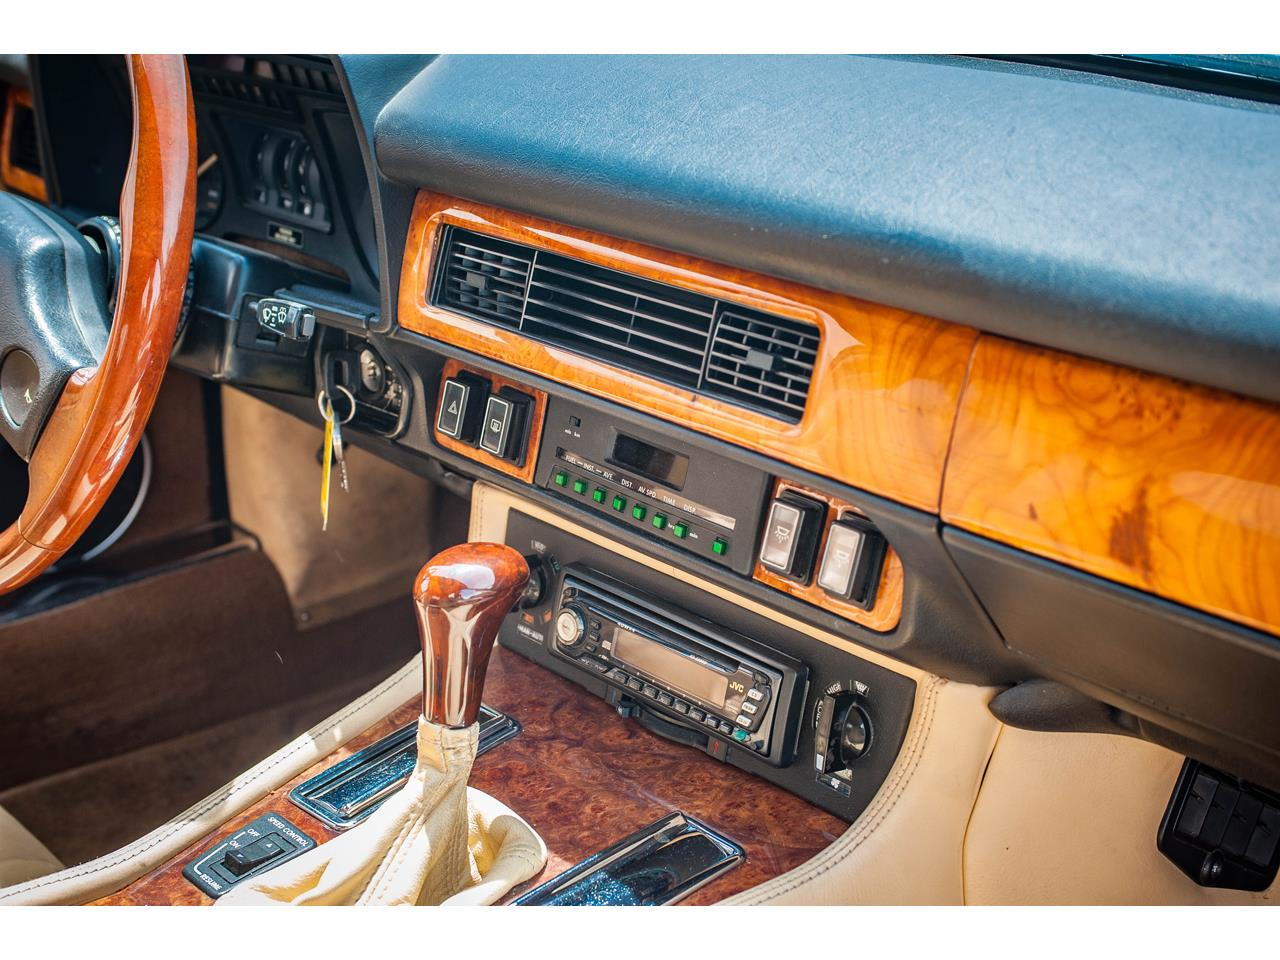 Large Picture of '89 Jaguar XJS located in O'Fallon Illinois - $20,000.00 Offered by Gateway Classic Cars - St. Louis - QB9L